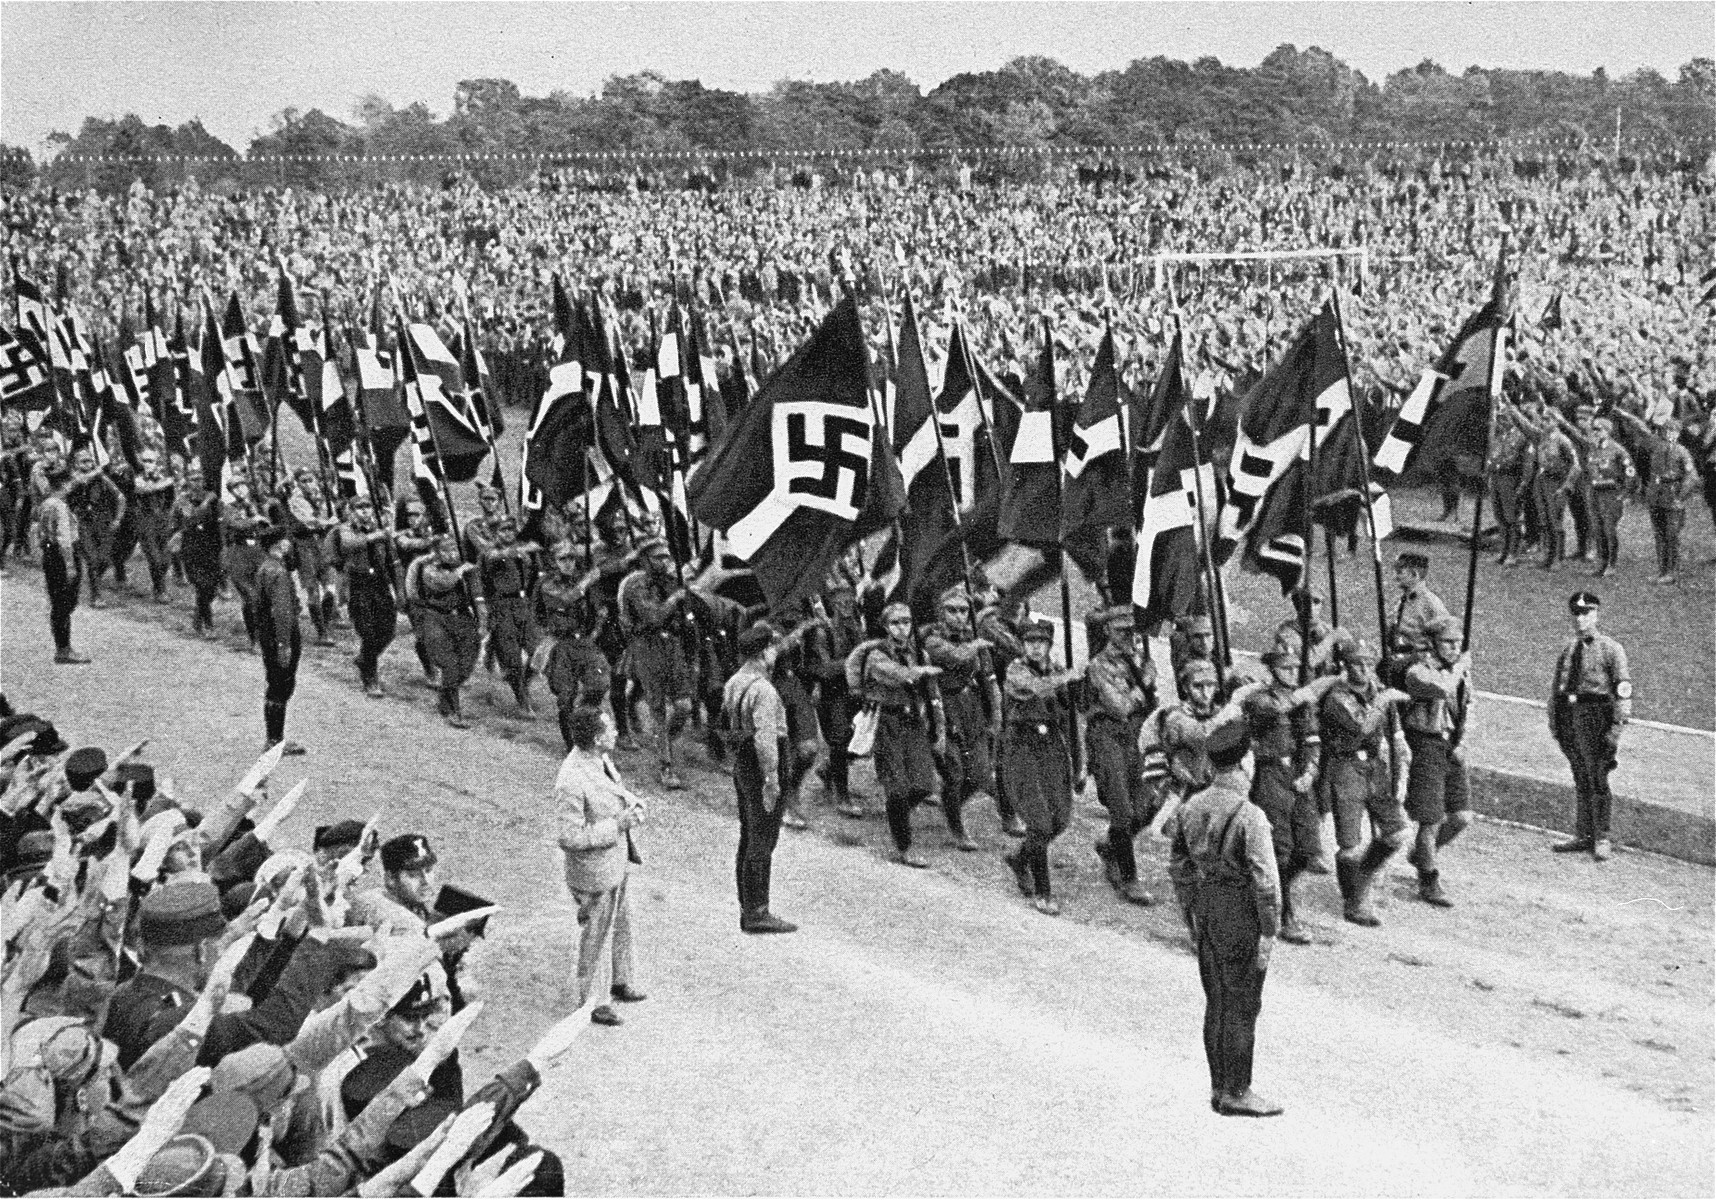 Hitler Youth members marching at a Reich Youth Day rally in Potsdam.